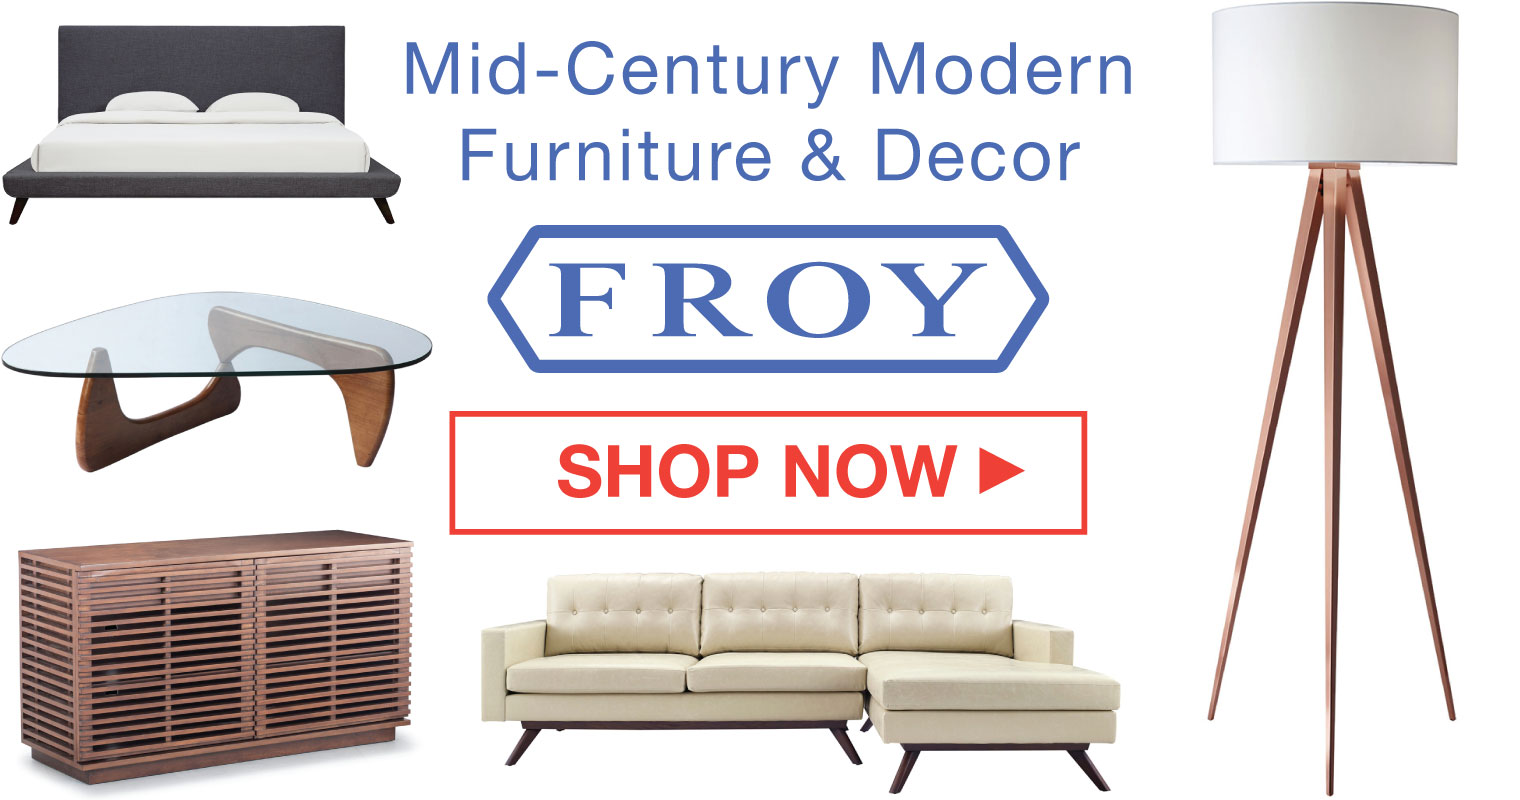 Mid-Century Modern Design & Decorating Guide - Lazy Loft by FROY